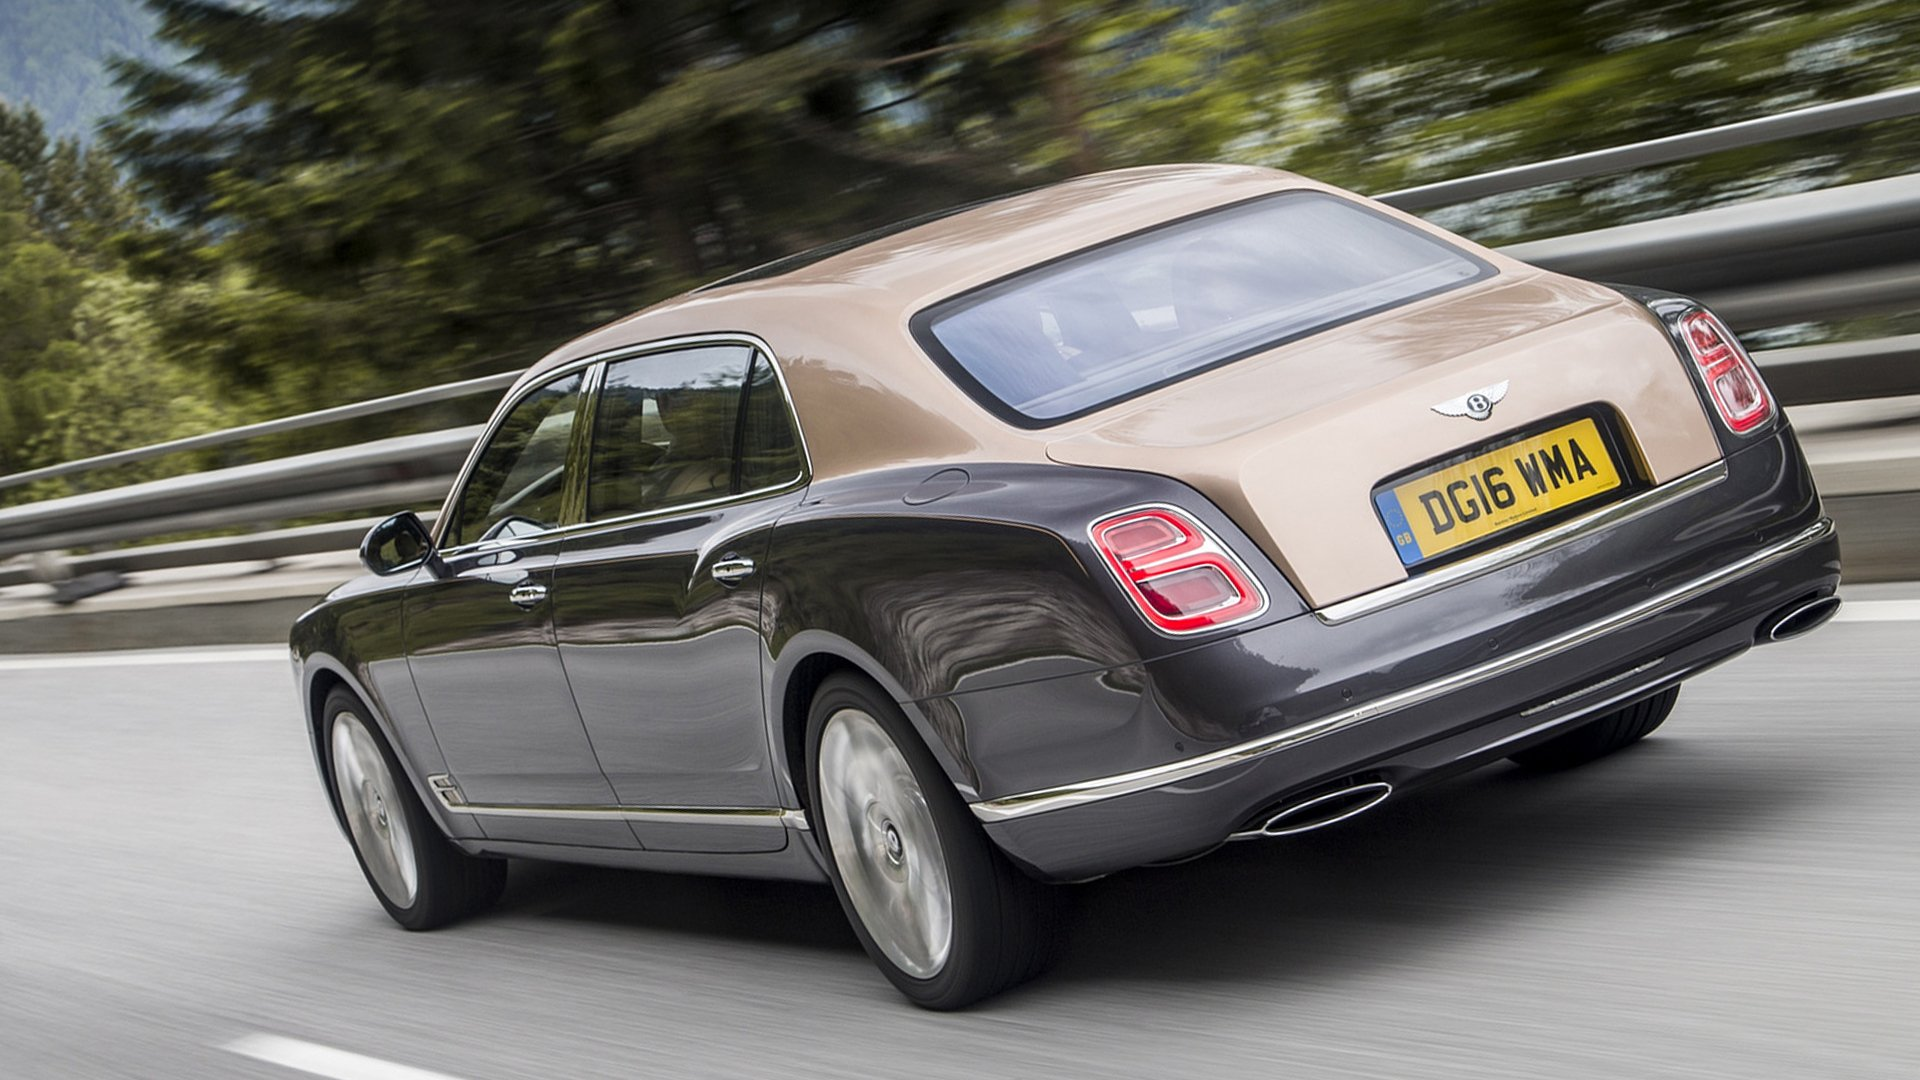 2018 Bentley Mulsanne V8 Engine Full HD